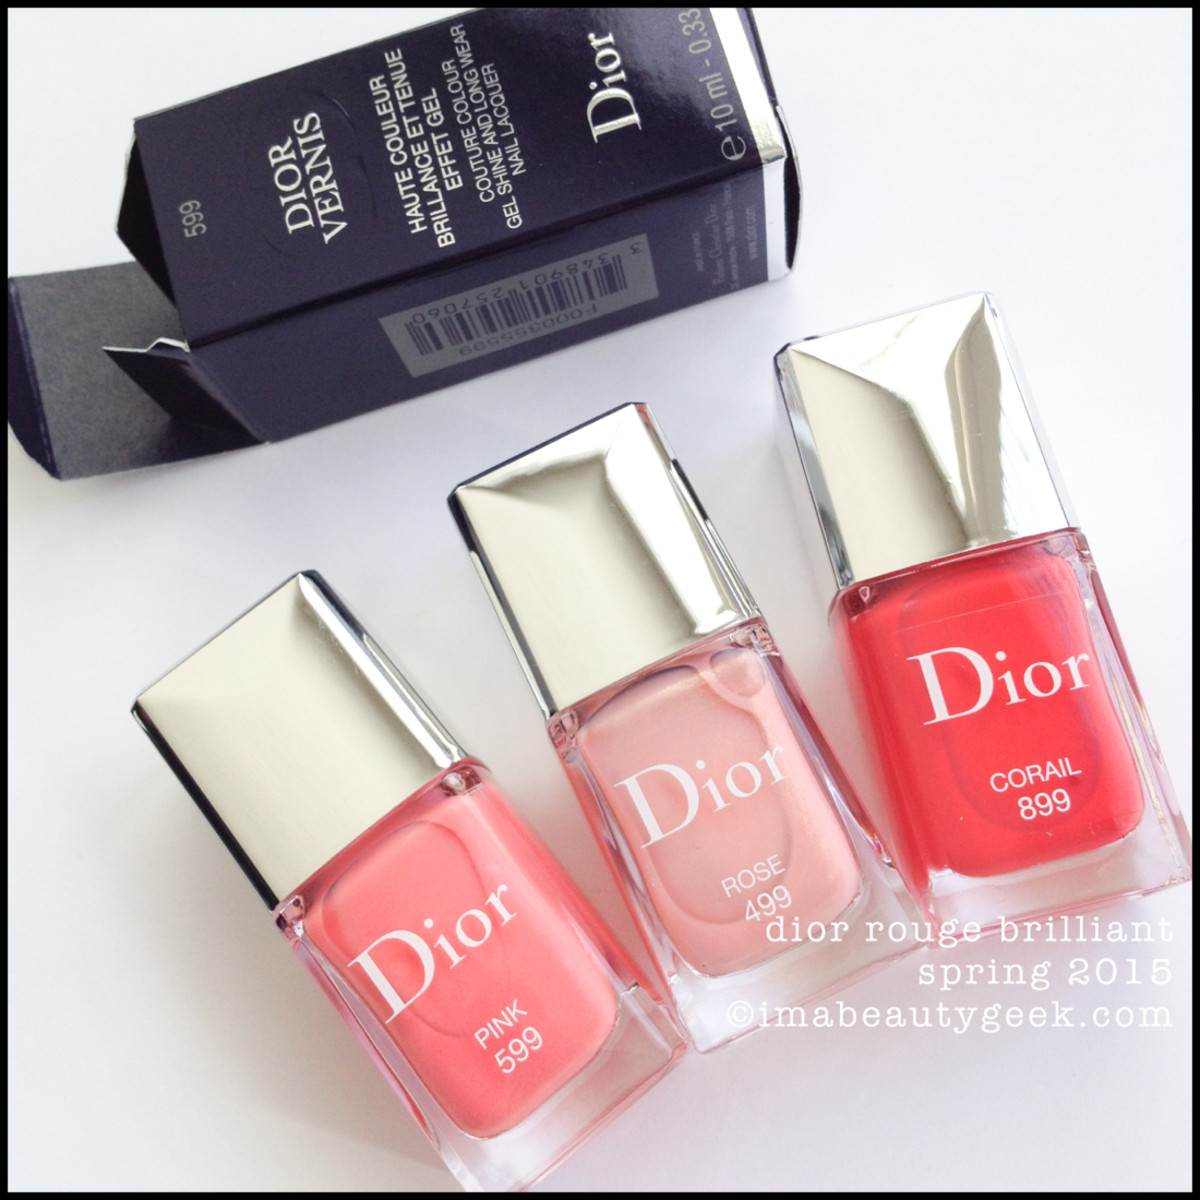 Dior Rouge Brilliant Vernis Spring 2015 Pink 599 Rose 499 Corail 899